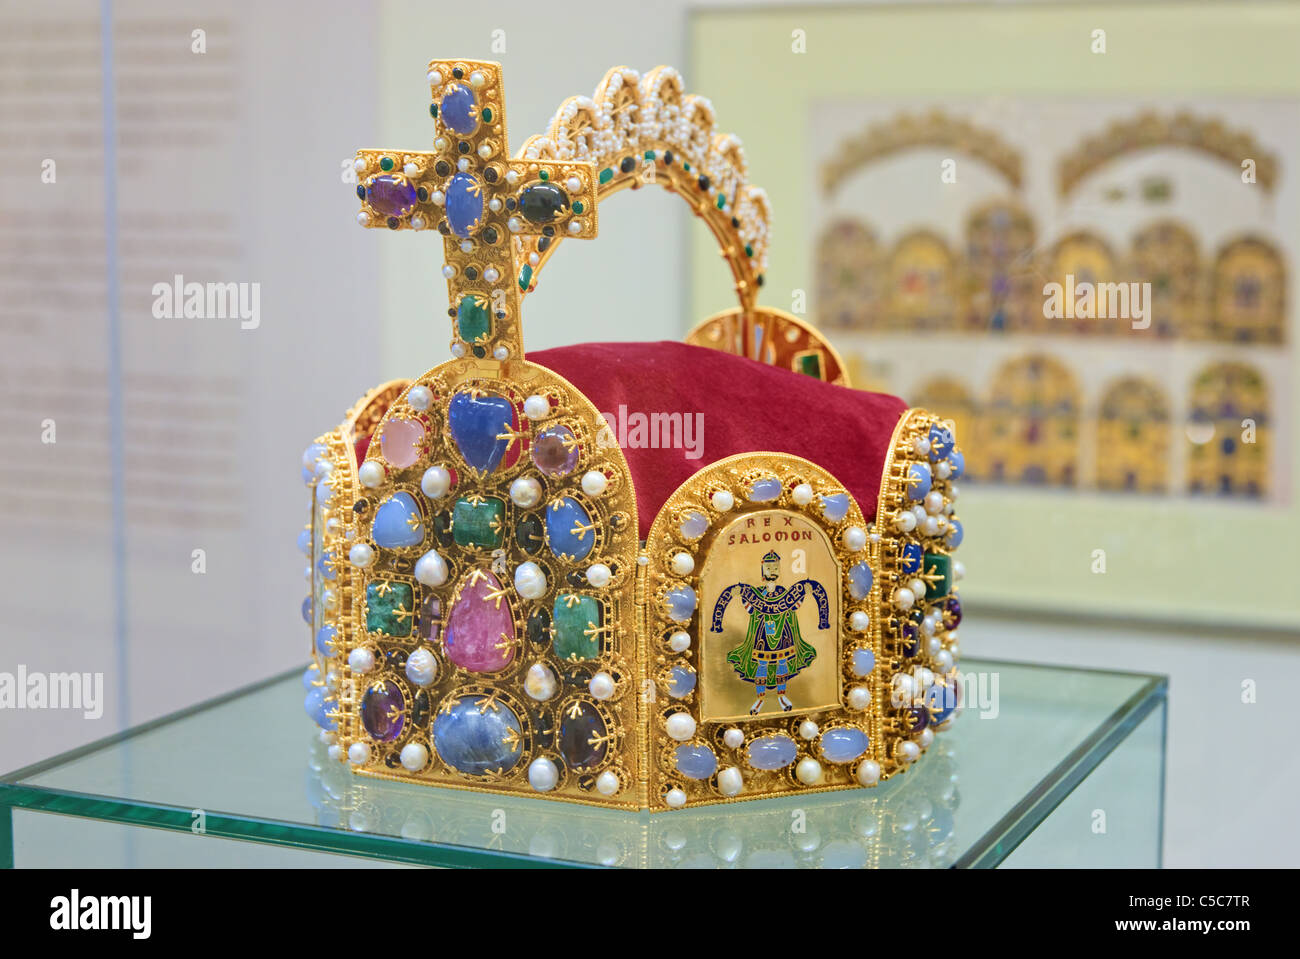 Reichskrone, Imperial Crown Jewels of Holy Roman Empire (copy), exposed in Rathaus, Nurnberg, Bavaria, Germany - Stock Image